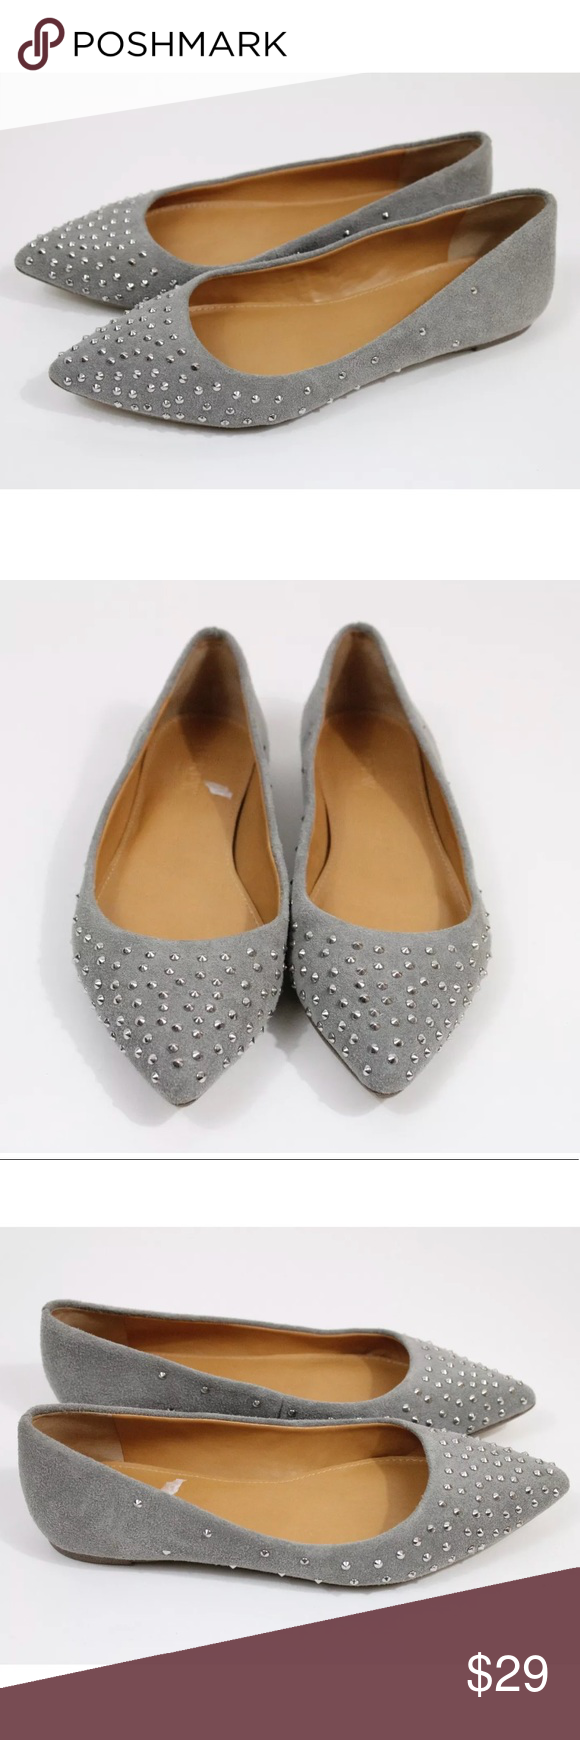 J.Crew 6 Grey Pointy Toe Studded Ballet Flats Size 6 Please see photos for best idea of condition j.crew Shoes Flats & Loafers